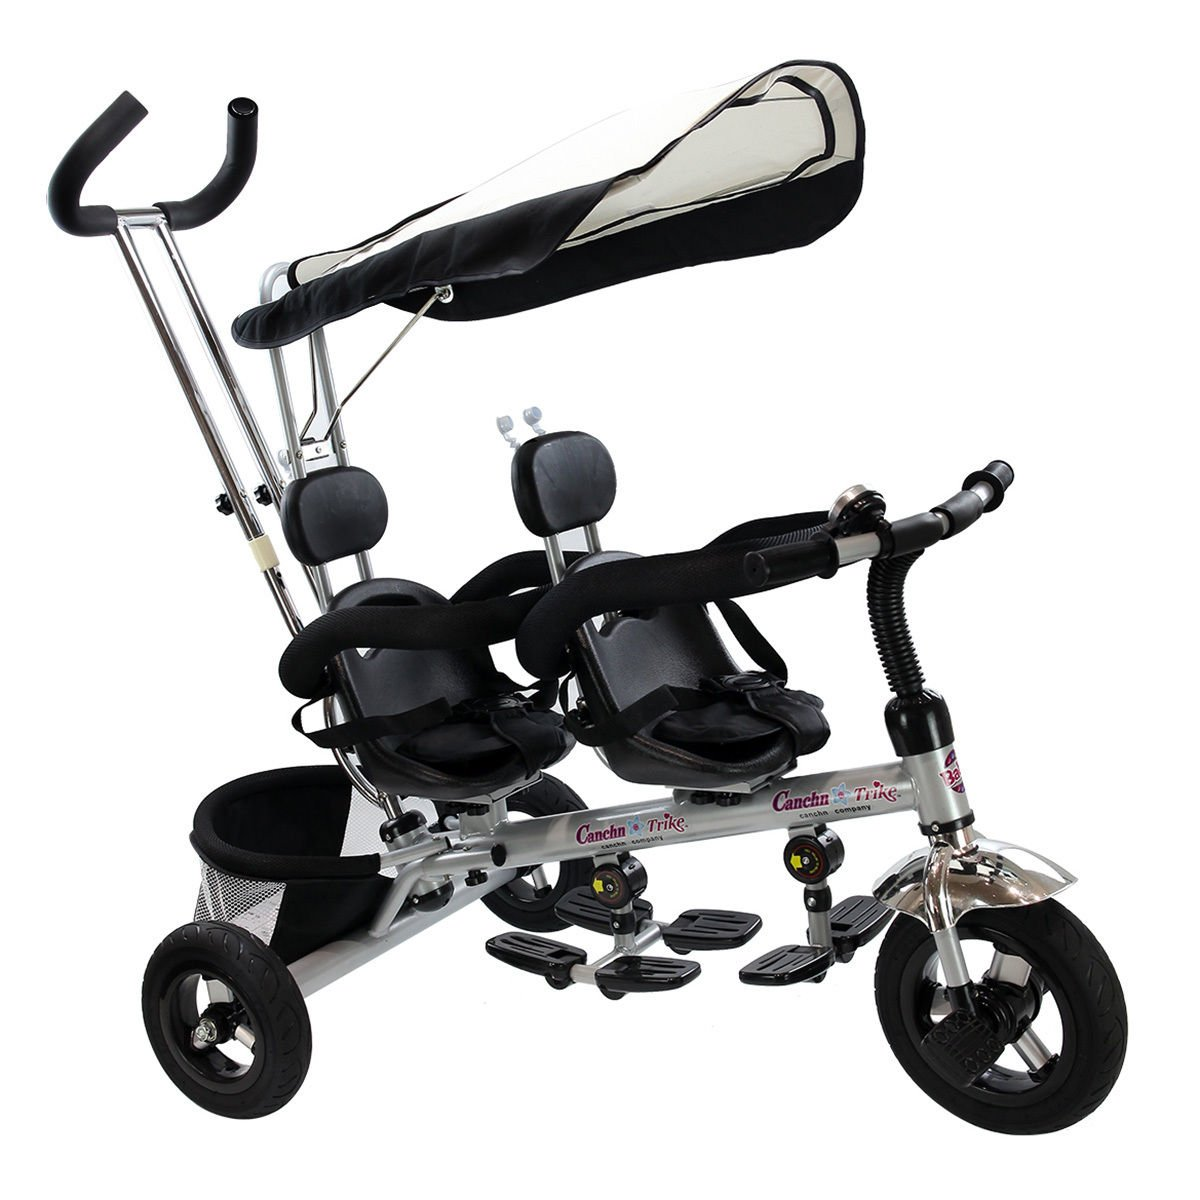 New 4 In 1 Twins Kids Baby Stroller Tricycle Safety Double Rotatable Seat w/ Basket